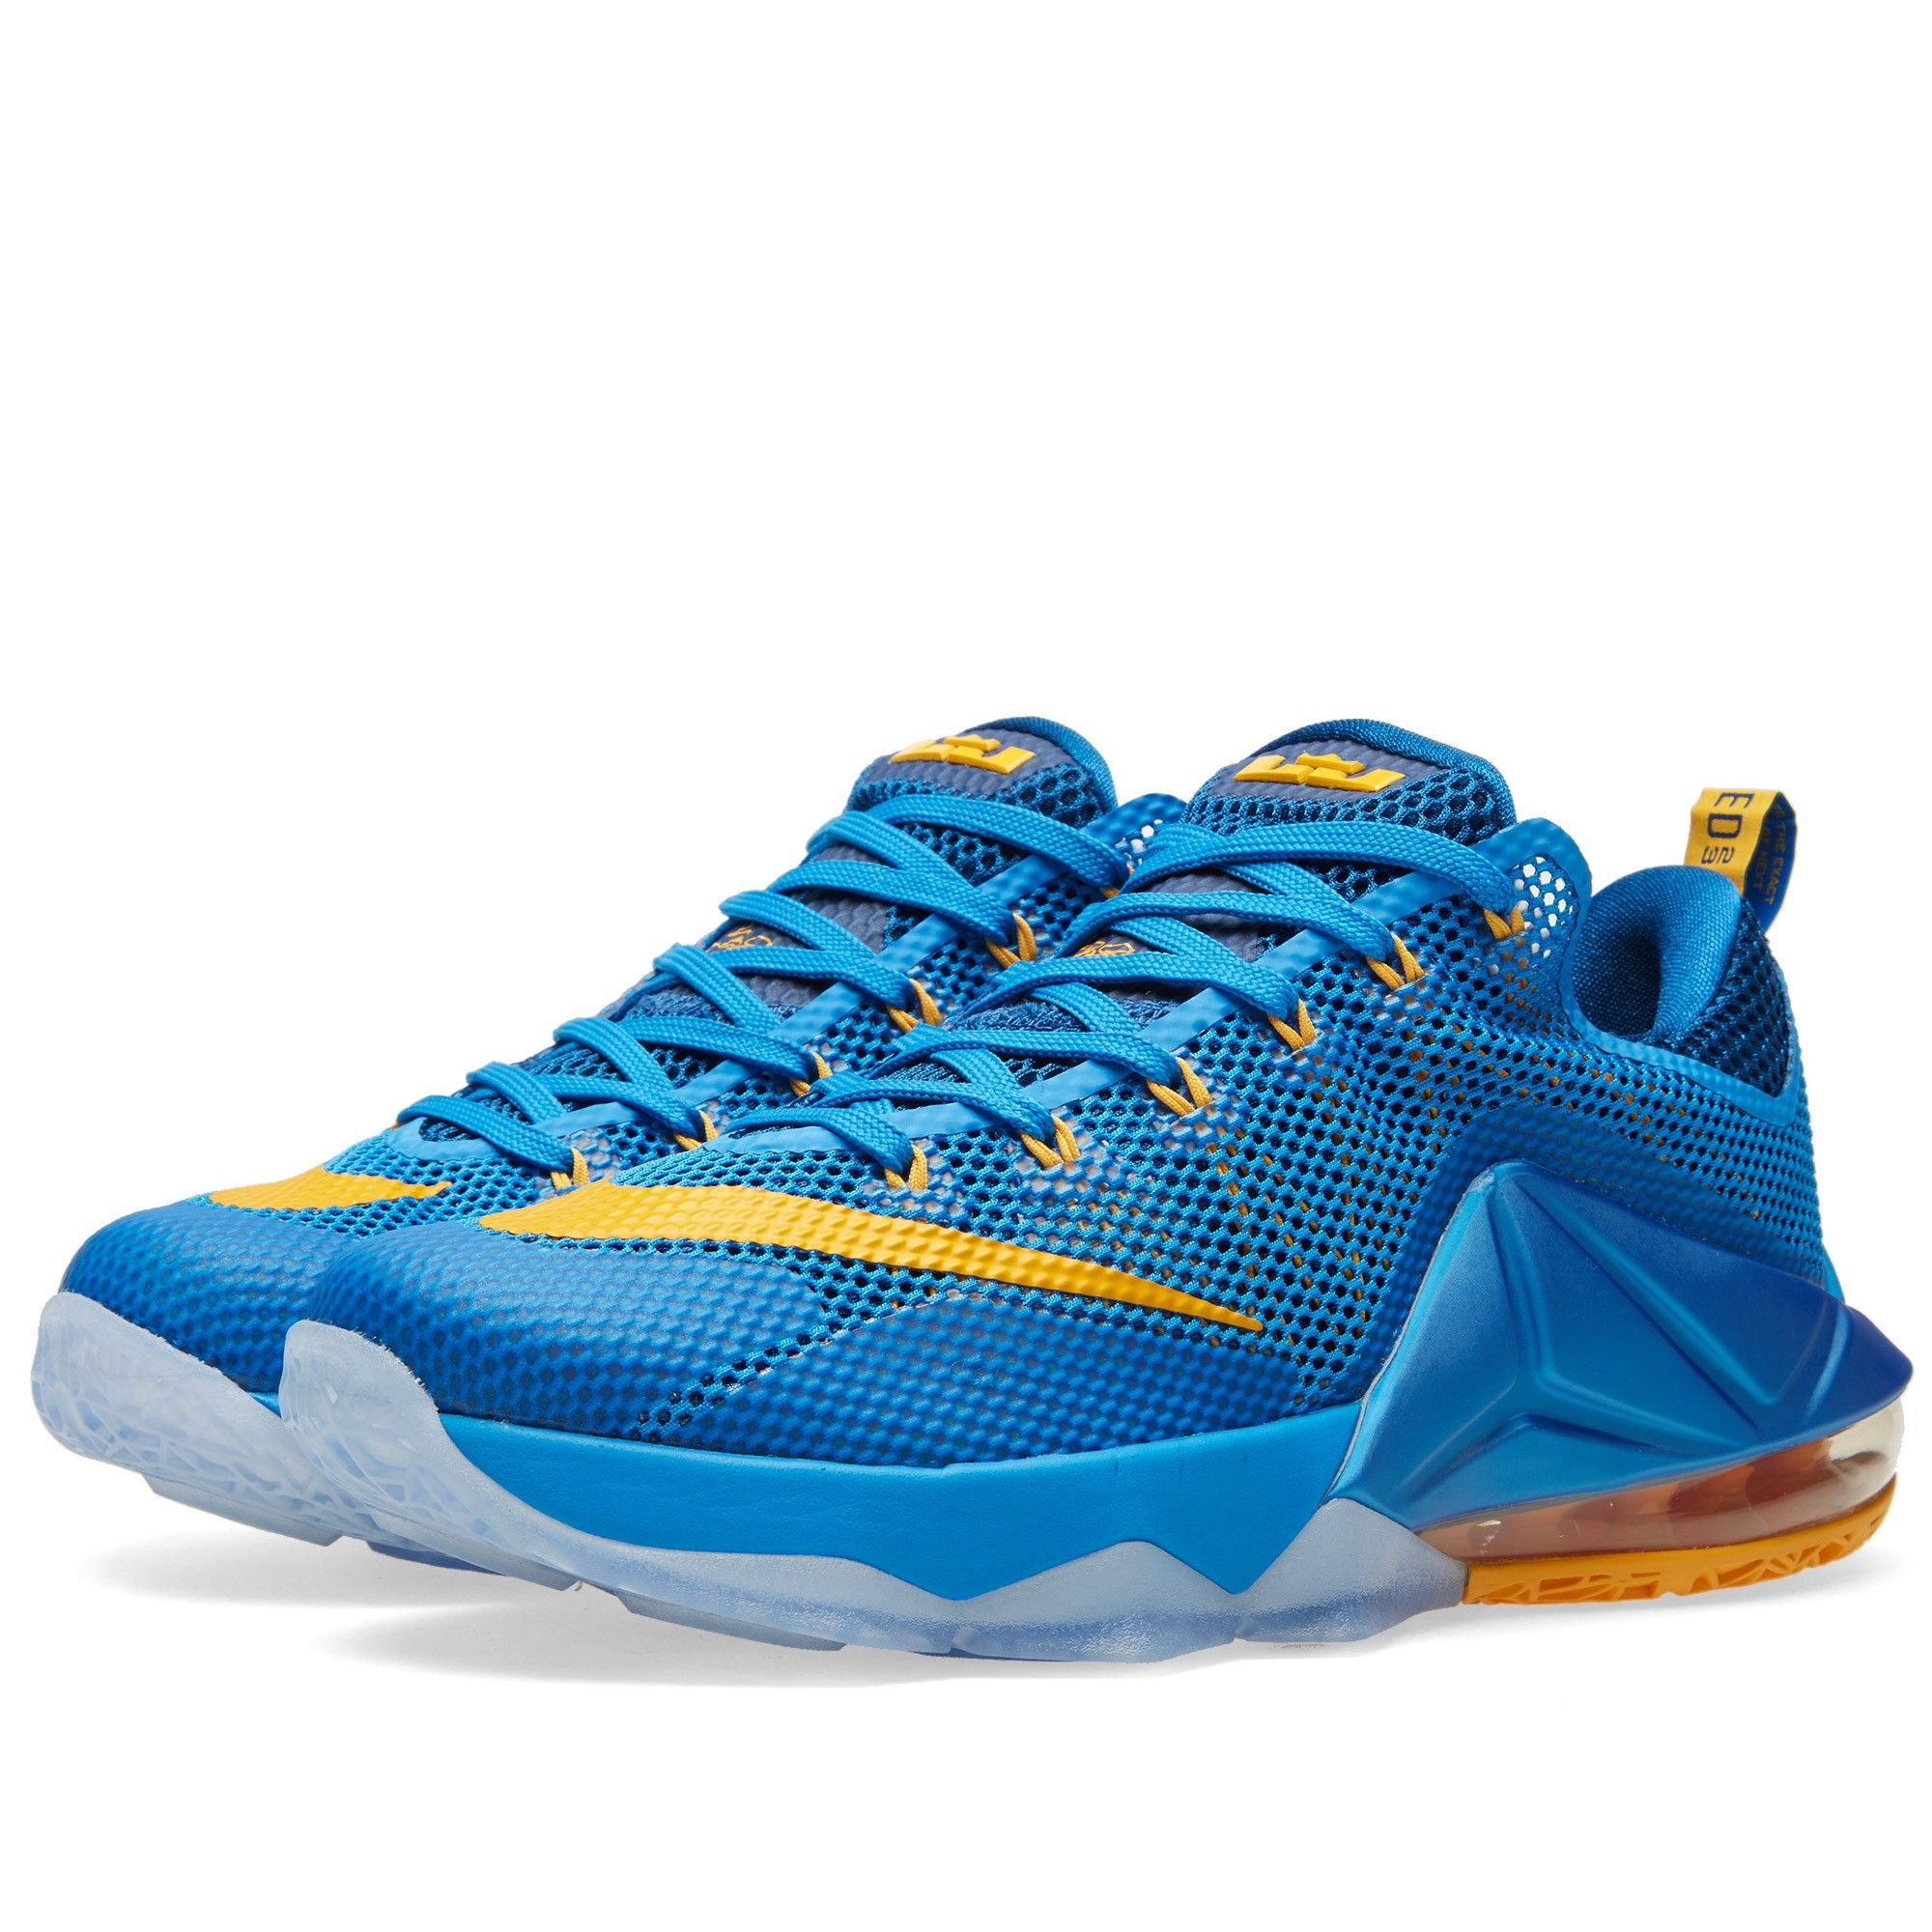 e3dfbc840865 Men s Nike LeBron XII Low  Entourage  (Photo Blue   University Gold) Article